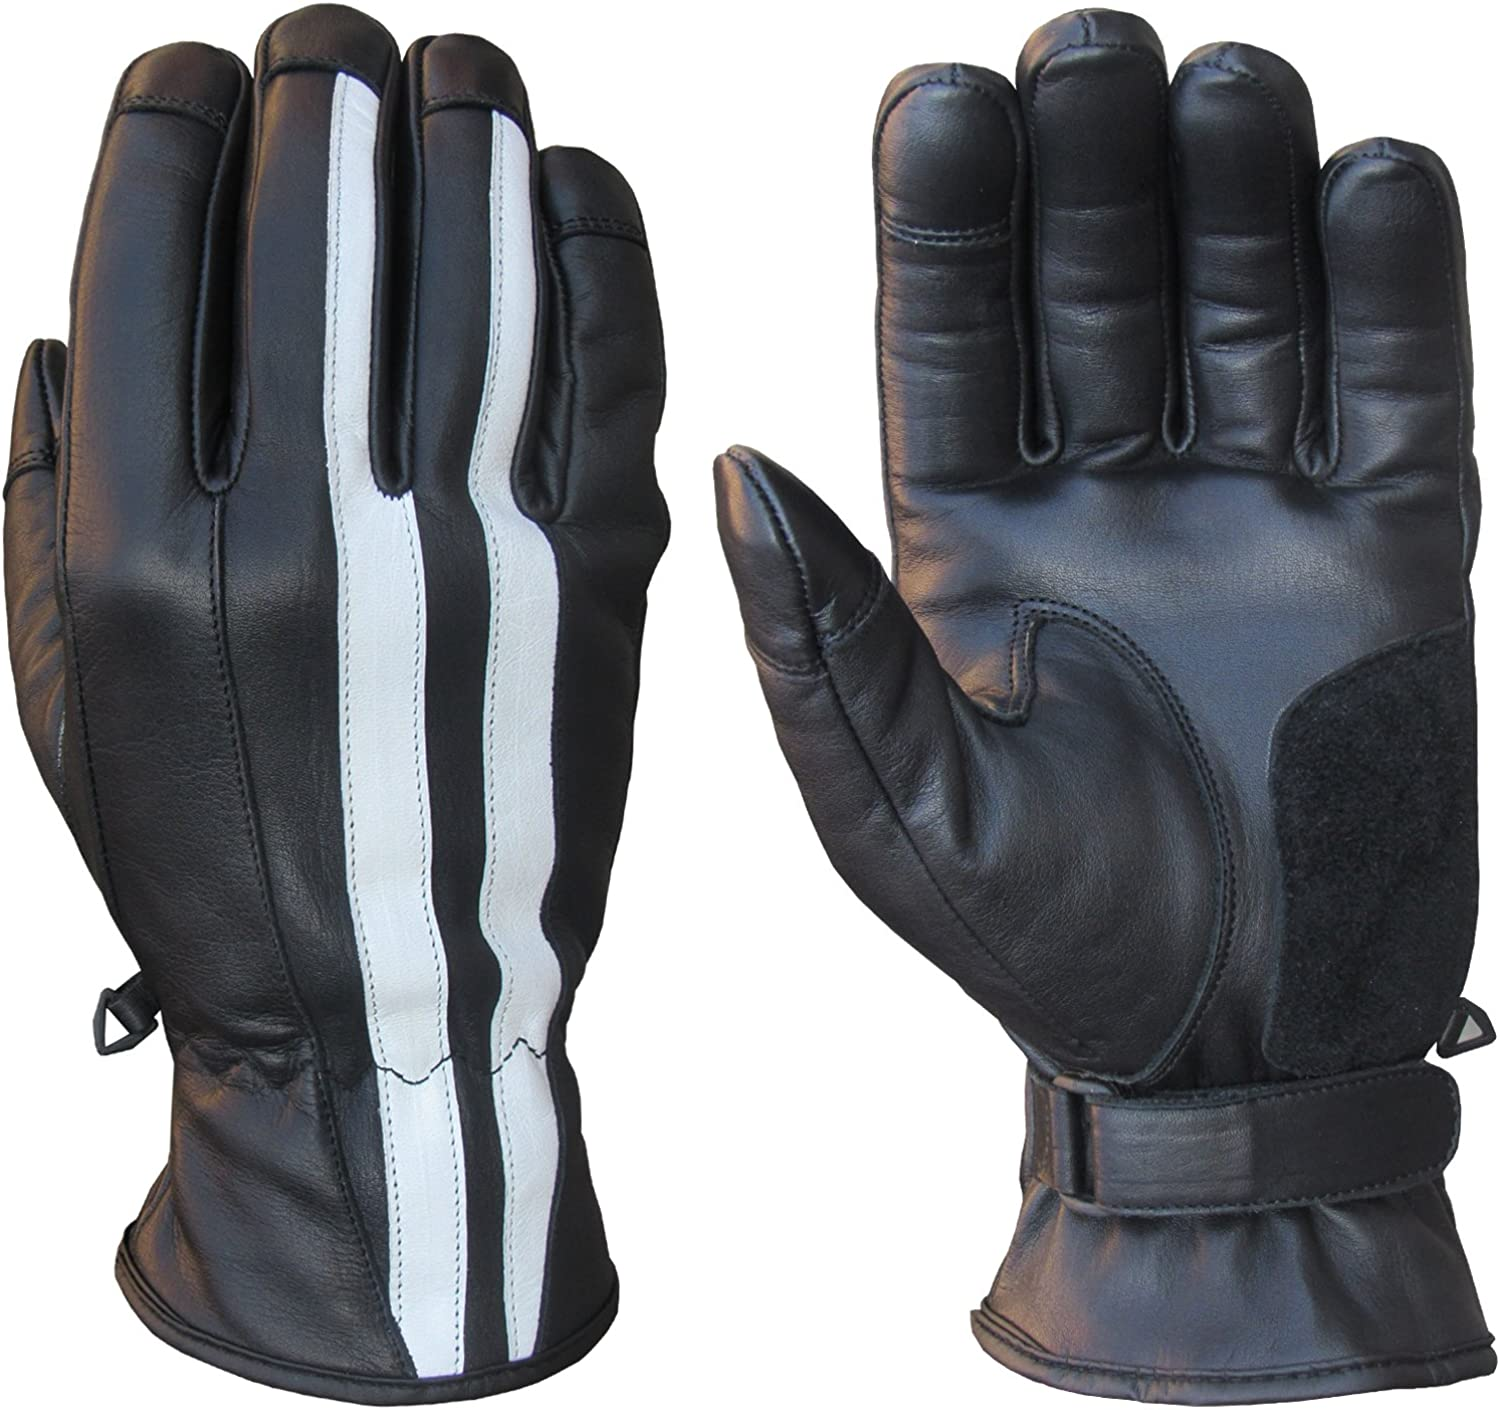 A/&H Apparel Mens Winter Leather Glove Genuine Cowhide Driving Thermal Insulate